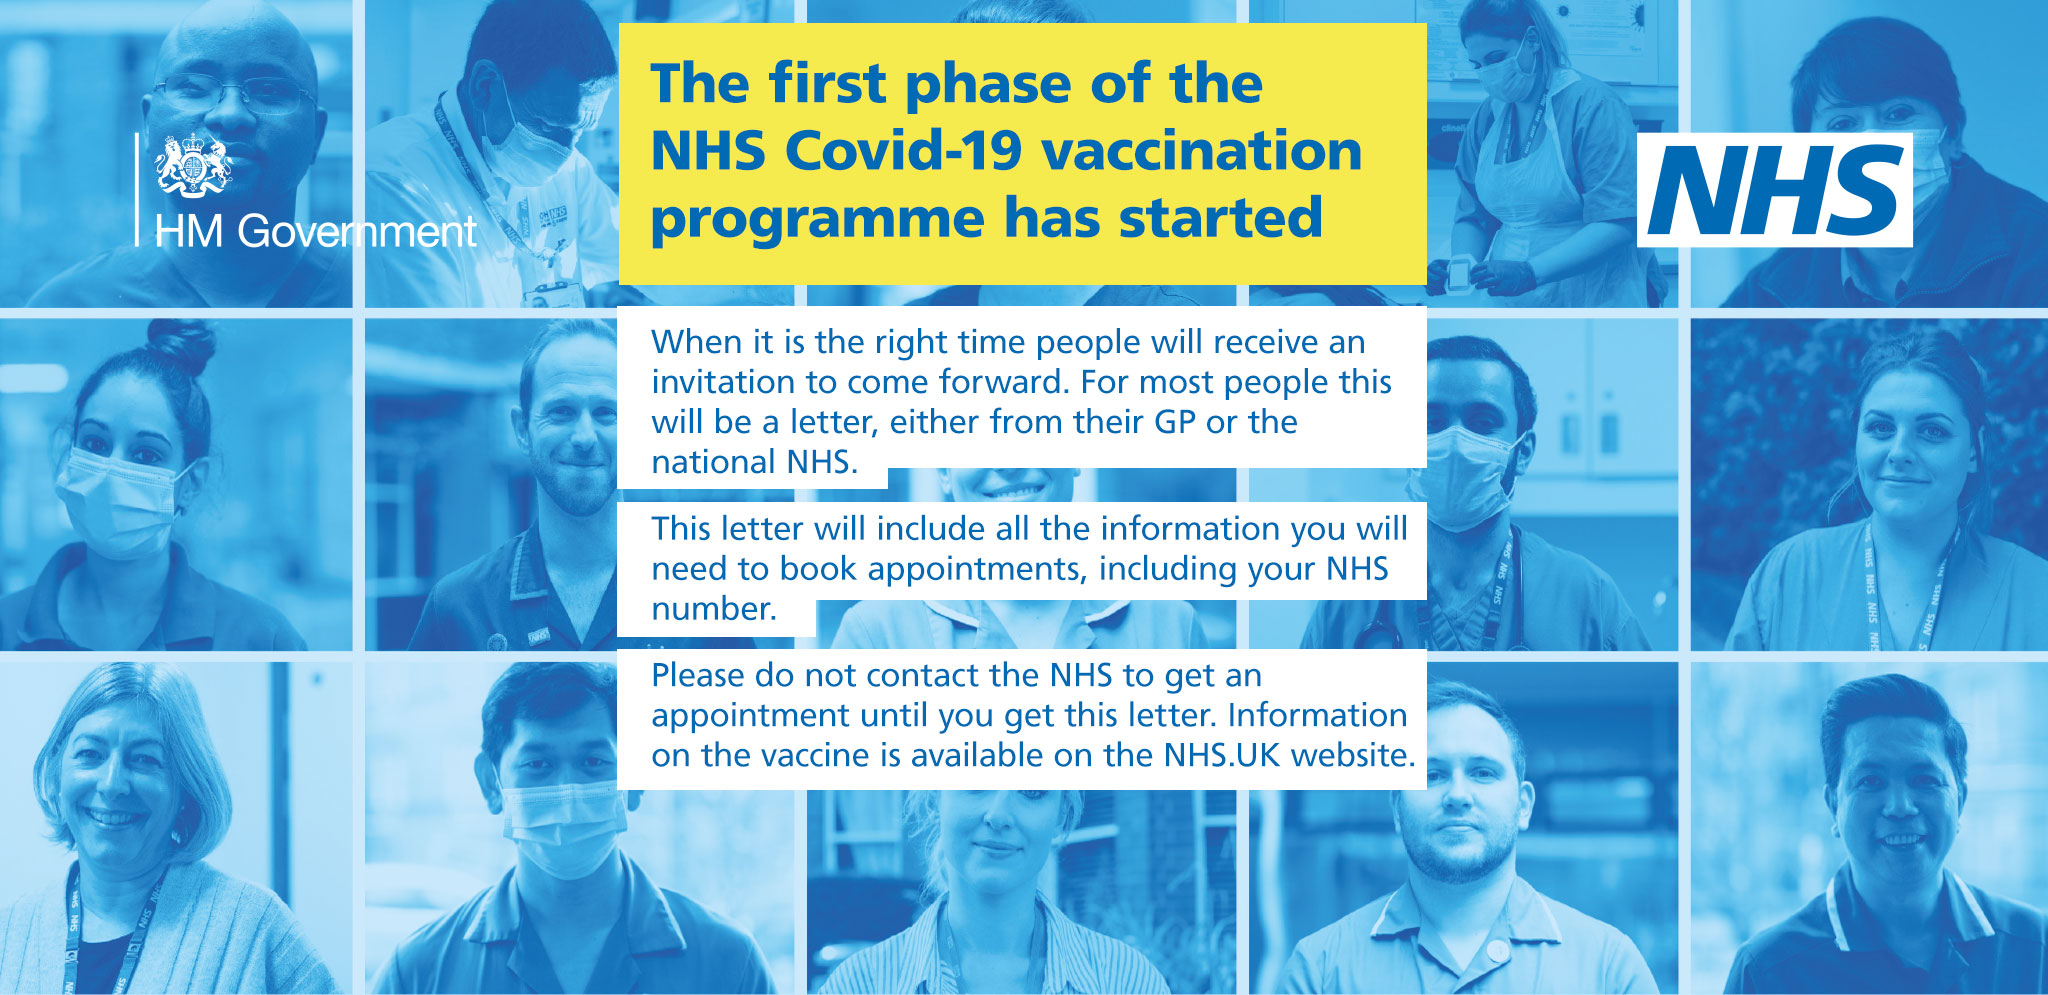 The first phase of the NHS Covid-19 vaccination programme has started. When it is the right time people will receive an invitation to come forward. For most people this will be a letter, either from their GP or the national NHS. This letter will include all the information you will need to book appointments, including your NHS number. Please do not contact the NHS to get an appointment until you get this letter. Information on the vaccine is available on the NHS.UK website.